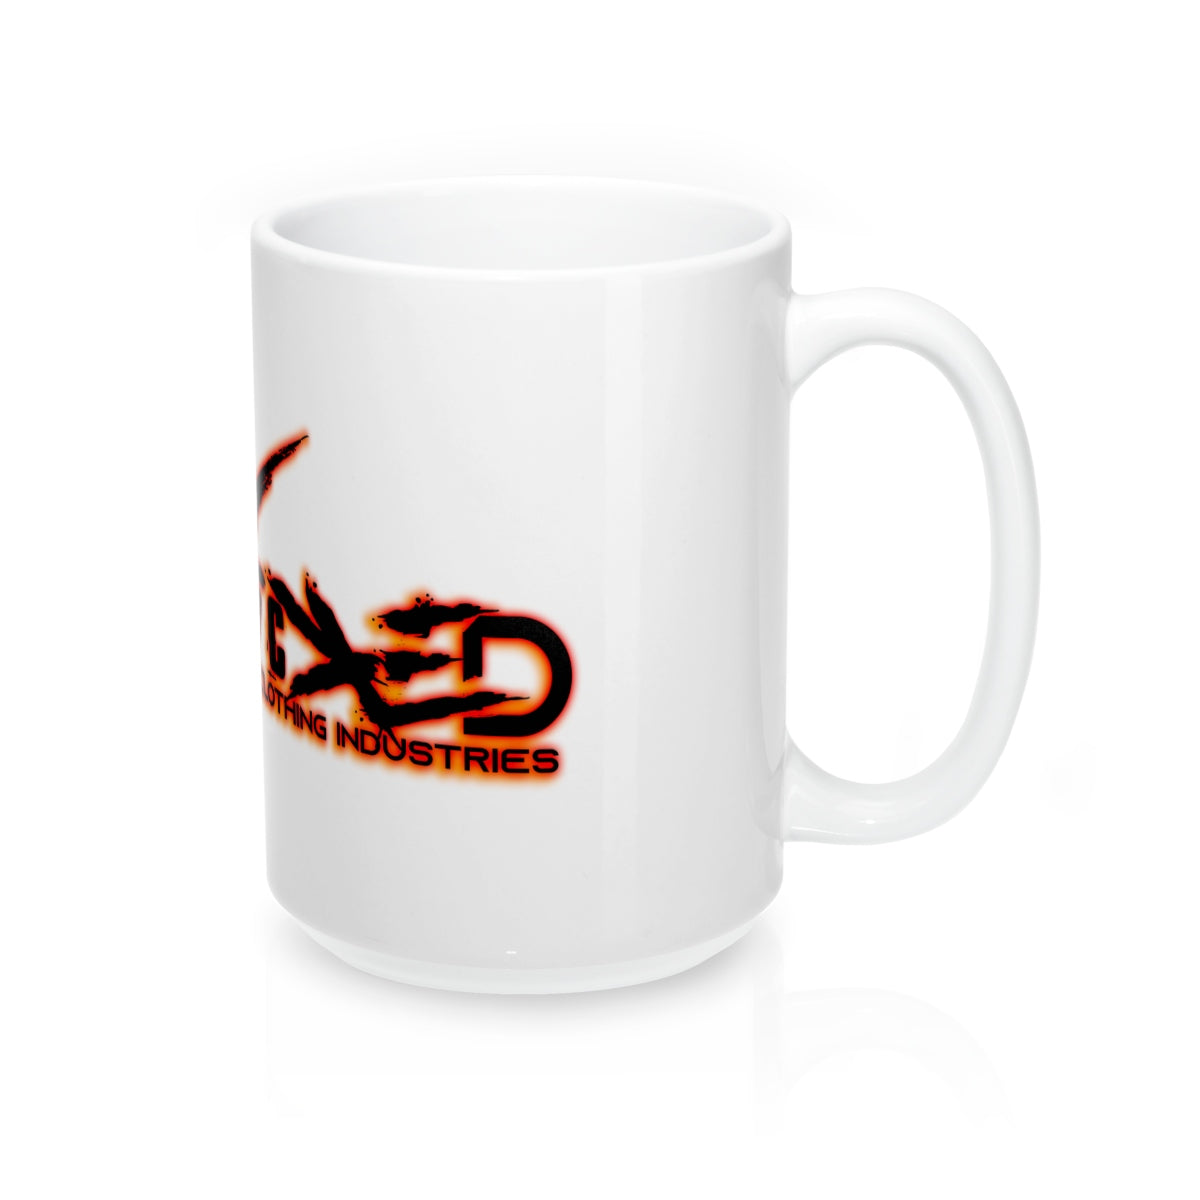 Wicked Sunrise/Coffee Mug 15oz